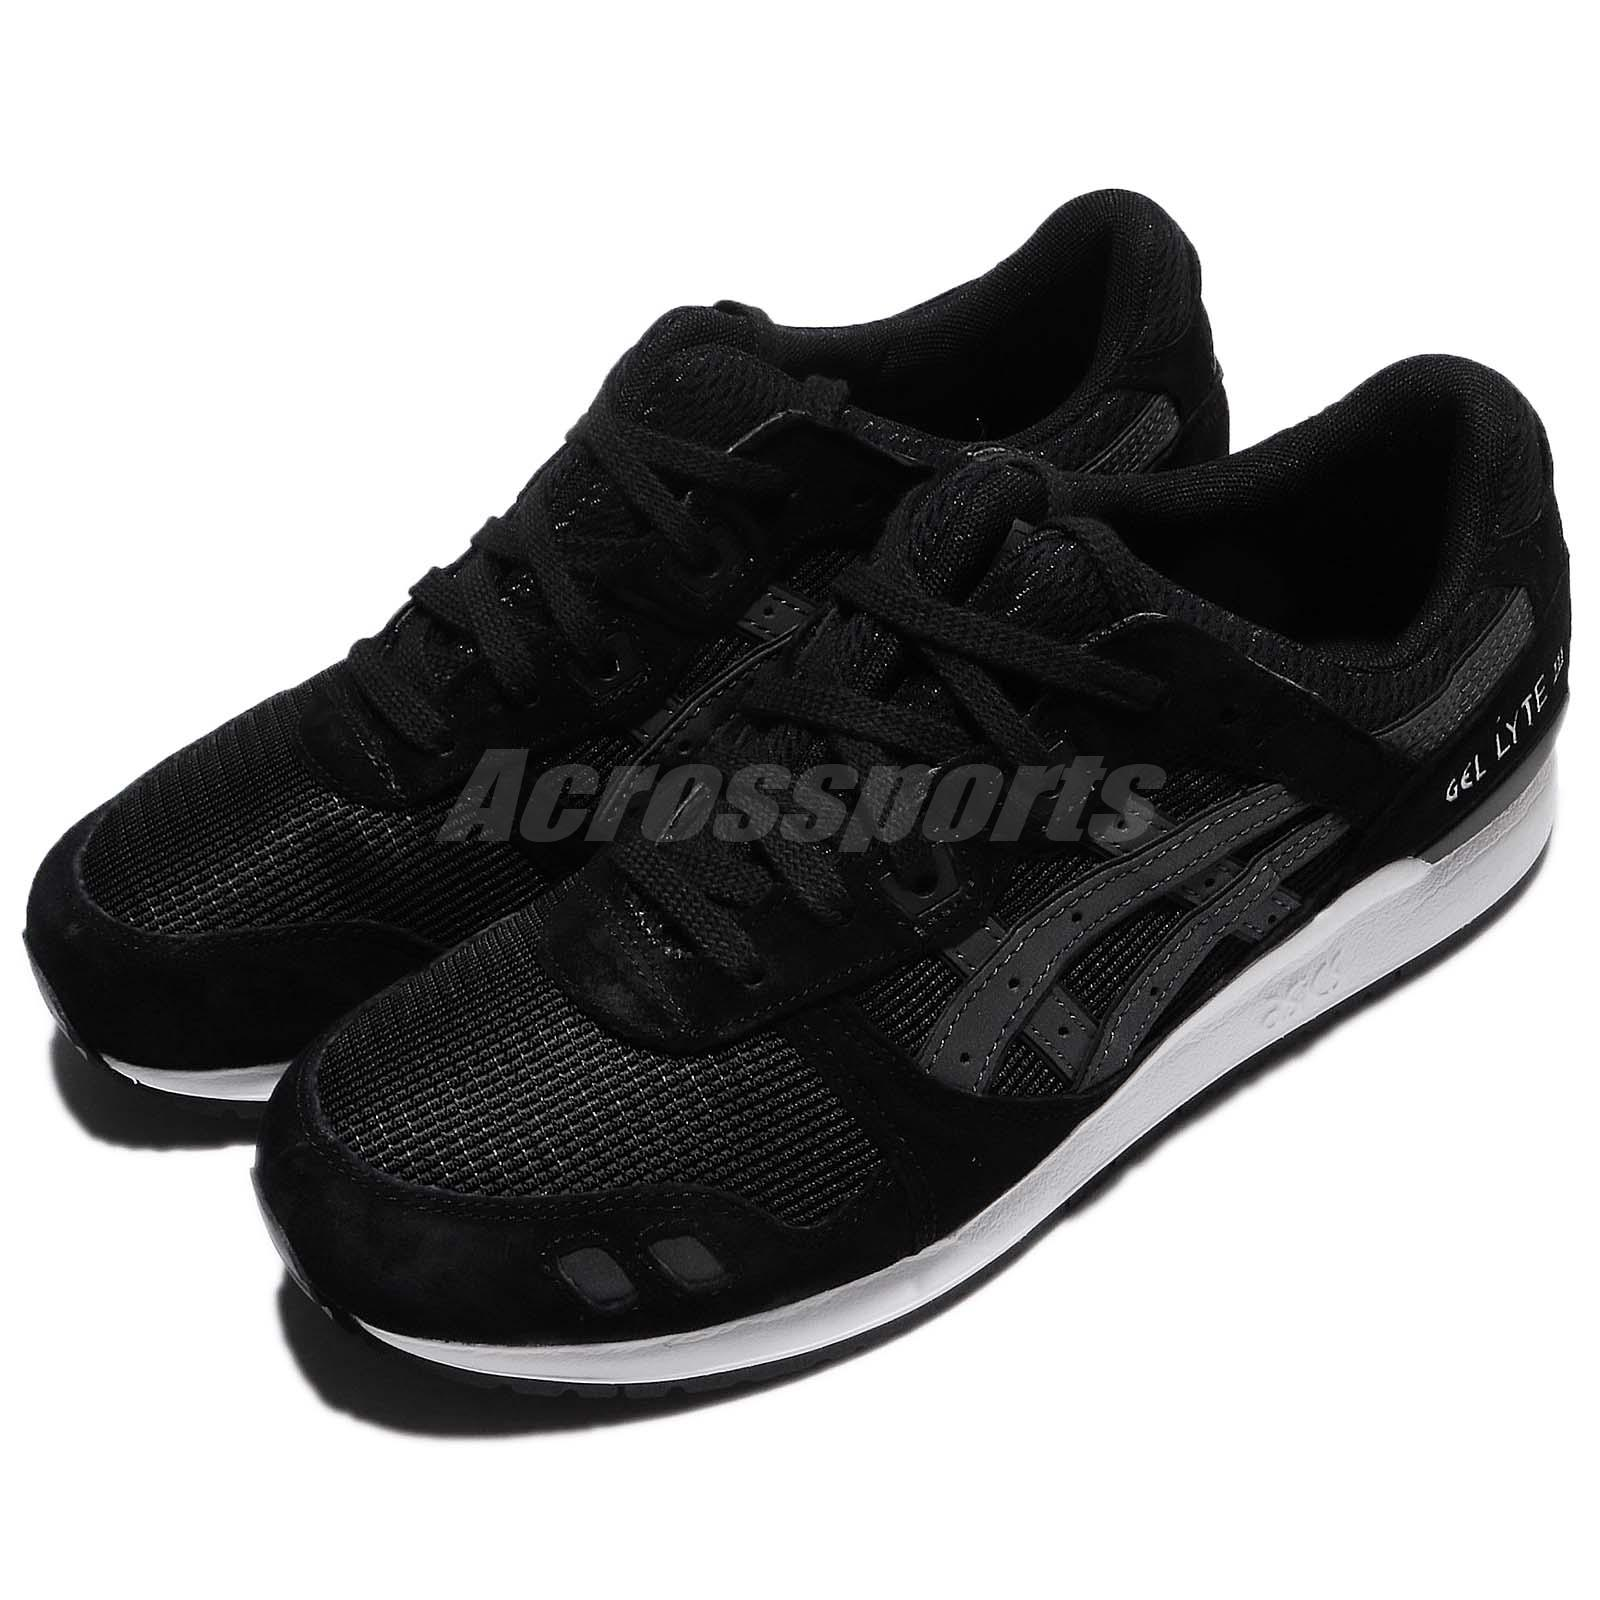 low priced b3f84 b01ab Details about Asics Tiger Gel-Lyte III 3 Black White Men Running Shoes  Sneakers HL7Y09090